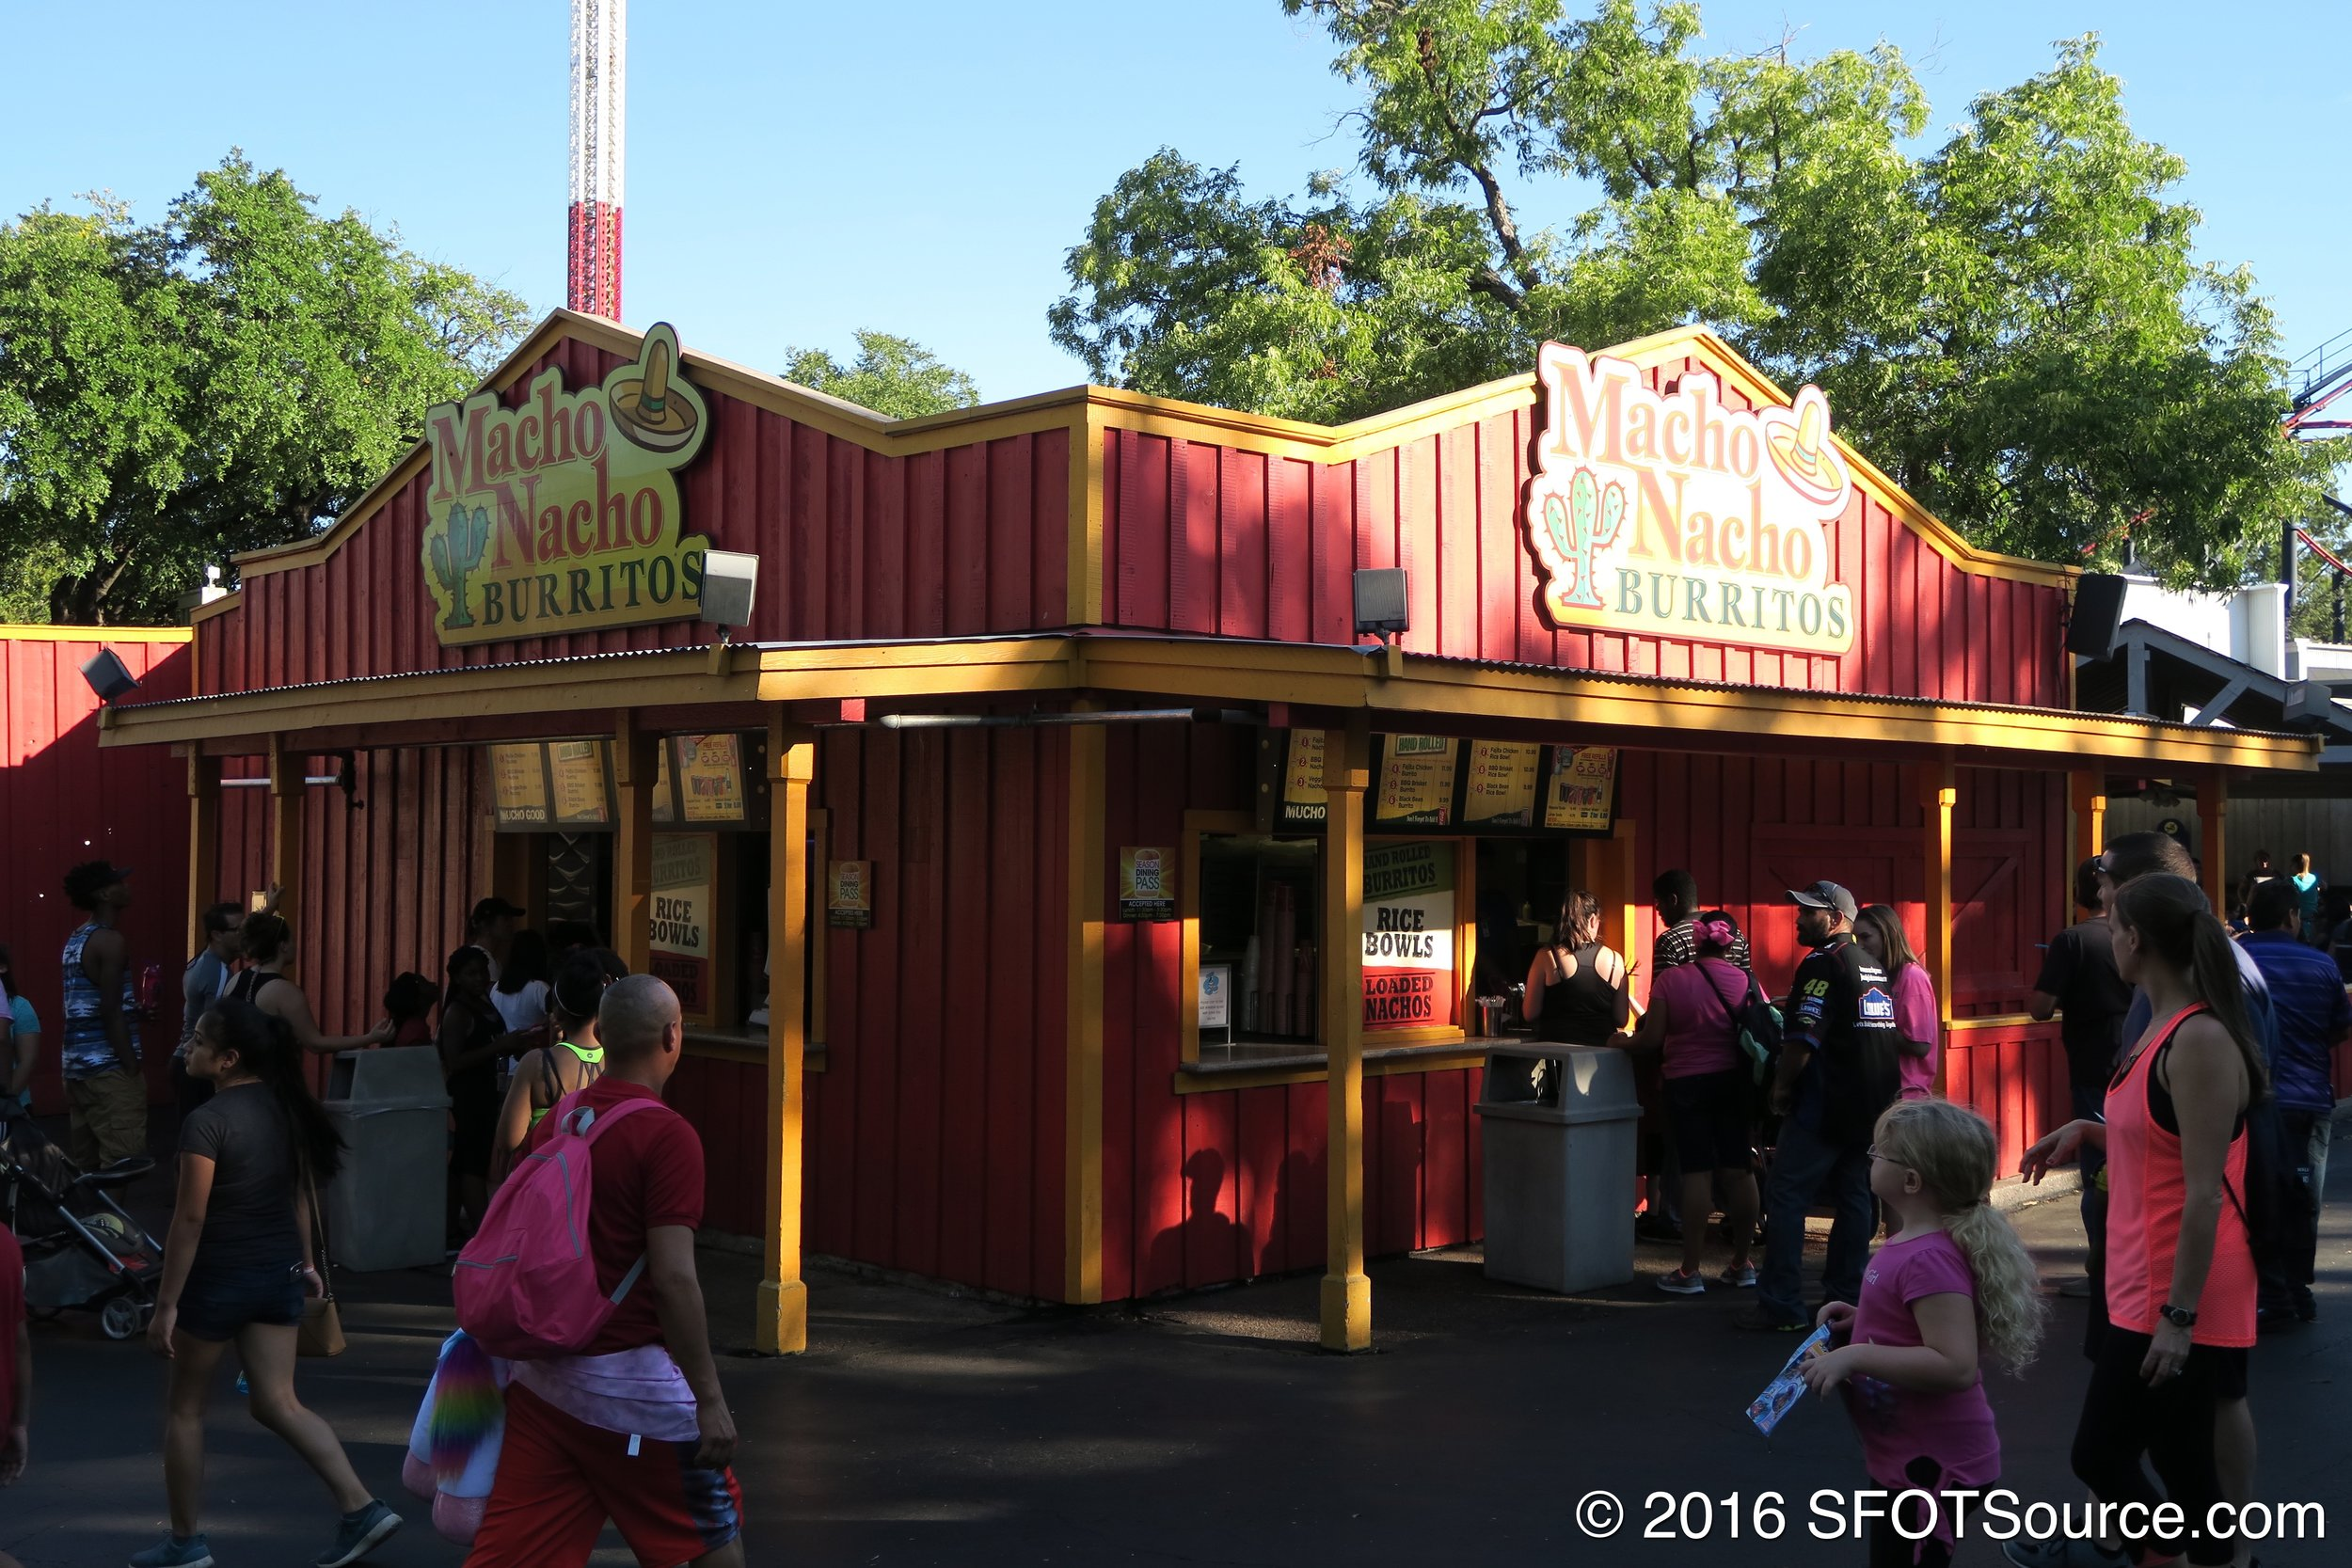 Macho Nacho is located in the park's Boomtown section.